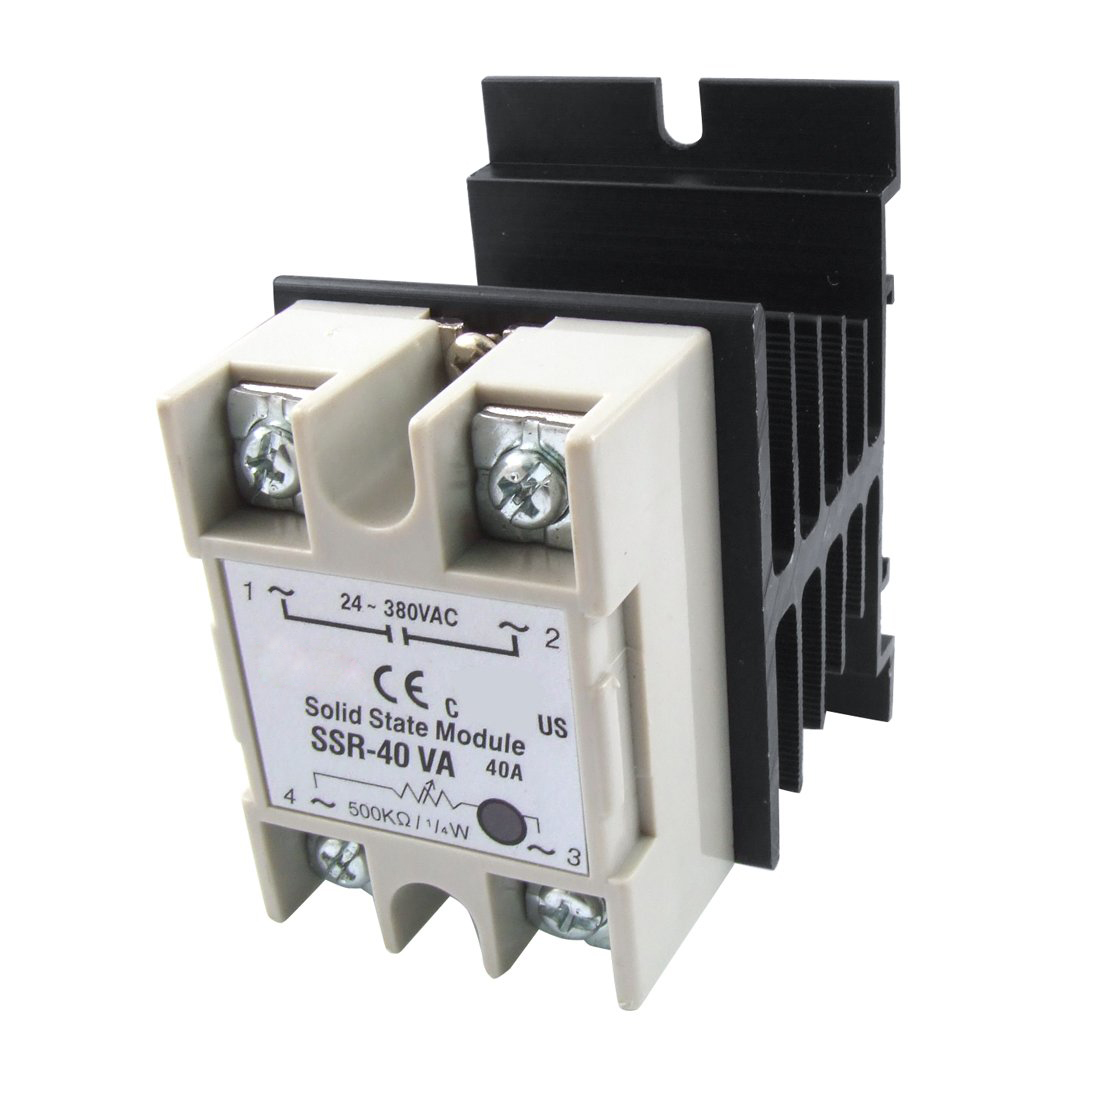 MYLB VolTage Resistance Regulator Solid State Relay SSR 40A 24-380V AC w Heat SInk normally open single phase solid state relay ssr mgr 1 d48120 120a control dc ac 24 480v